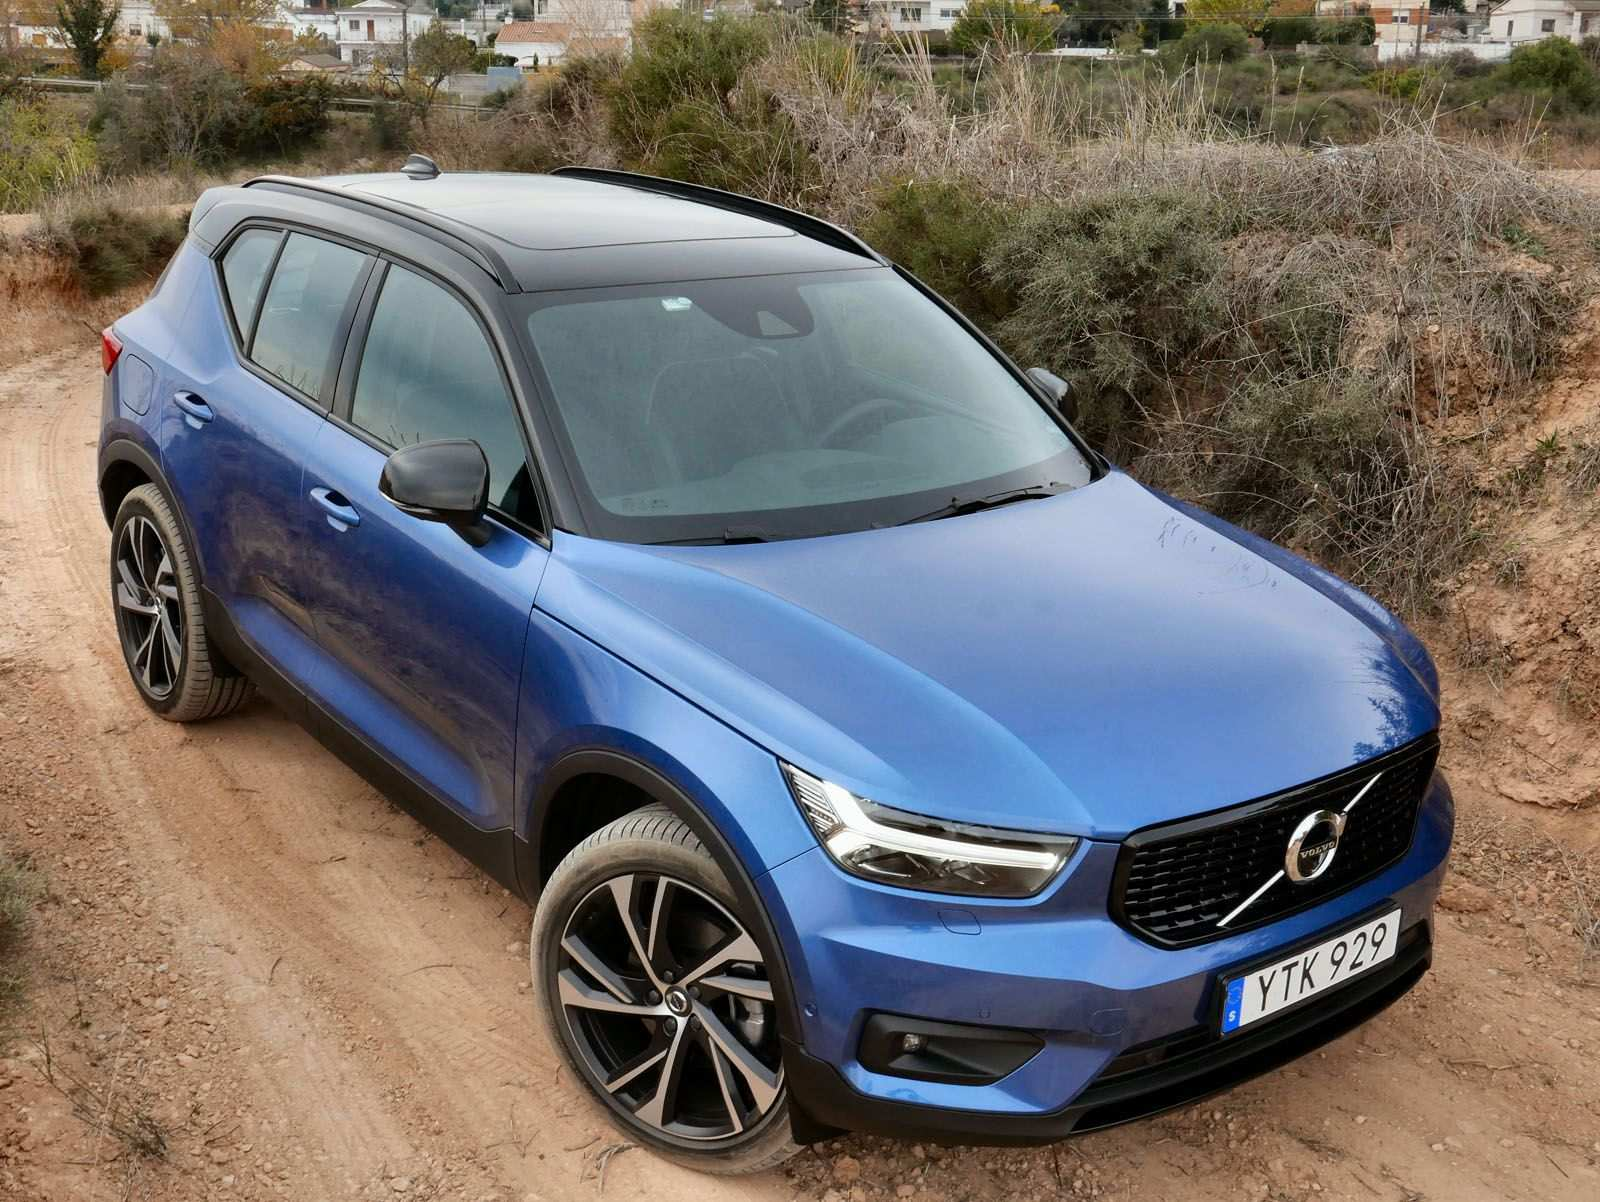 45 Gallery of 2019 Volvo Xc40 Mpg Engine for 2019 Volvo Xc40 Mpg